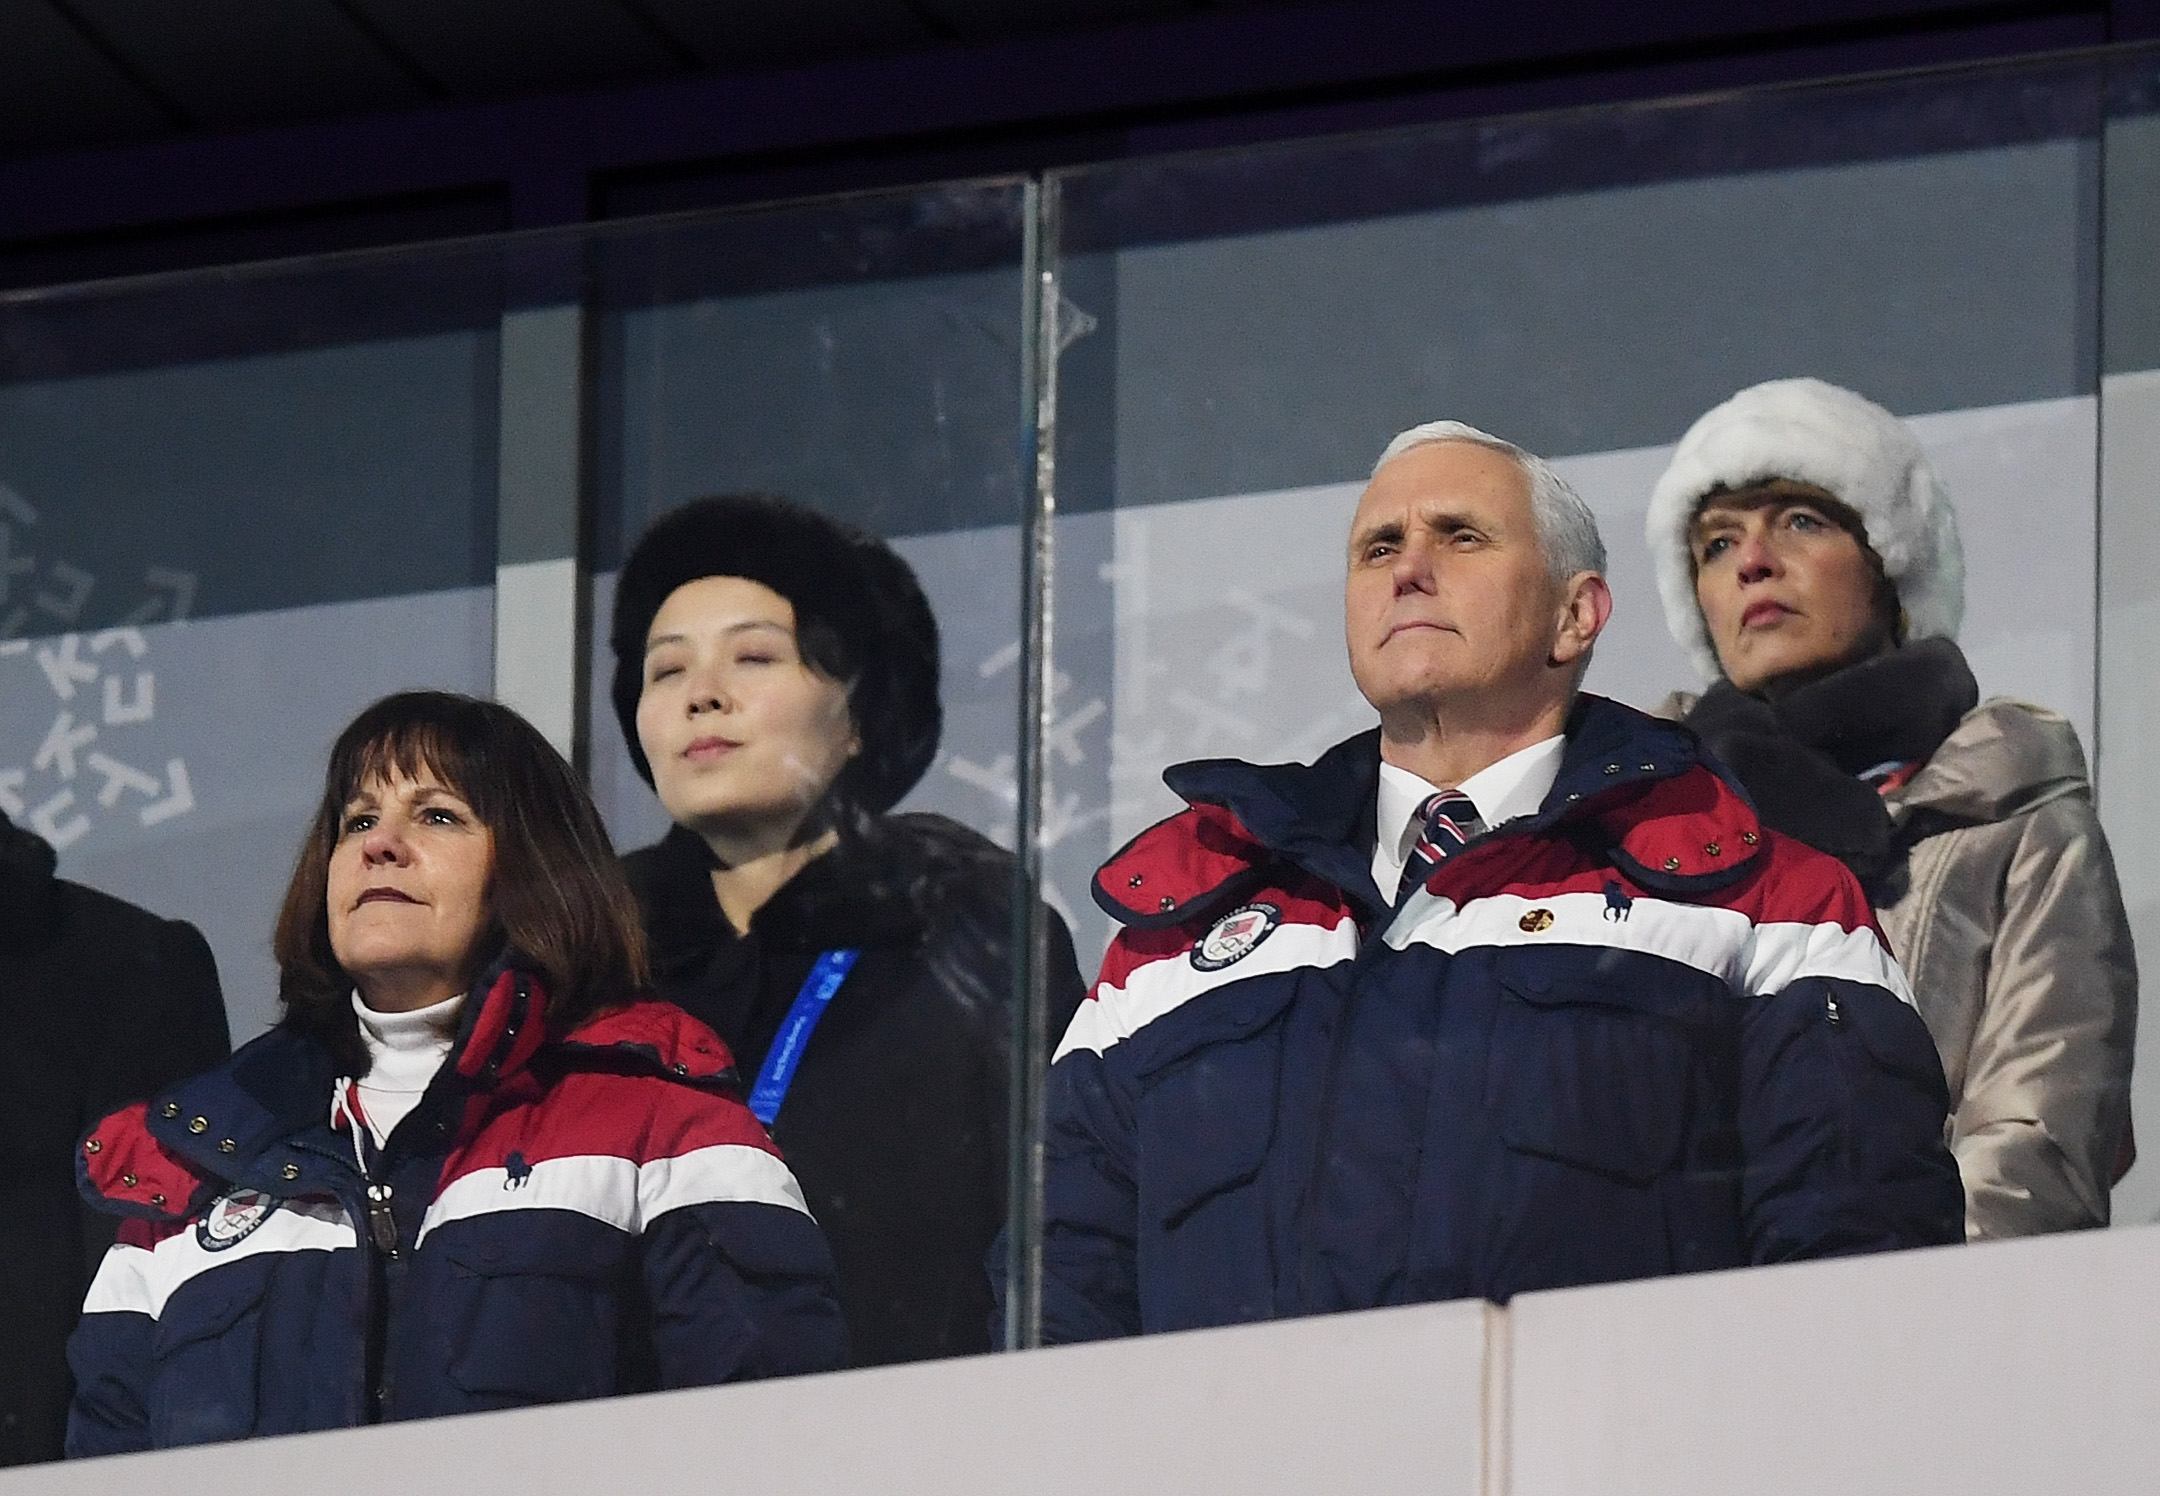 US Vice President Mike Pence (R) and North Korea's Kim Jong Uns sister Kim Yo Jong attend the opening ceremony of the Pyeongchang 2018 Winter Olympic Games at the Pyeongchang Stadium on February 9, 2018. (PHOTO / ODD ANDERSEN/AFP/Getty Images)